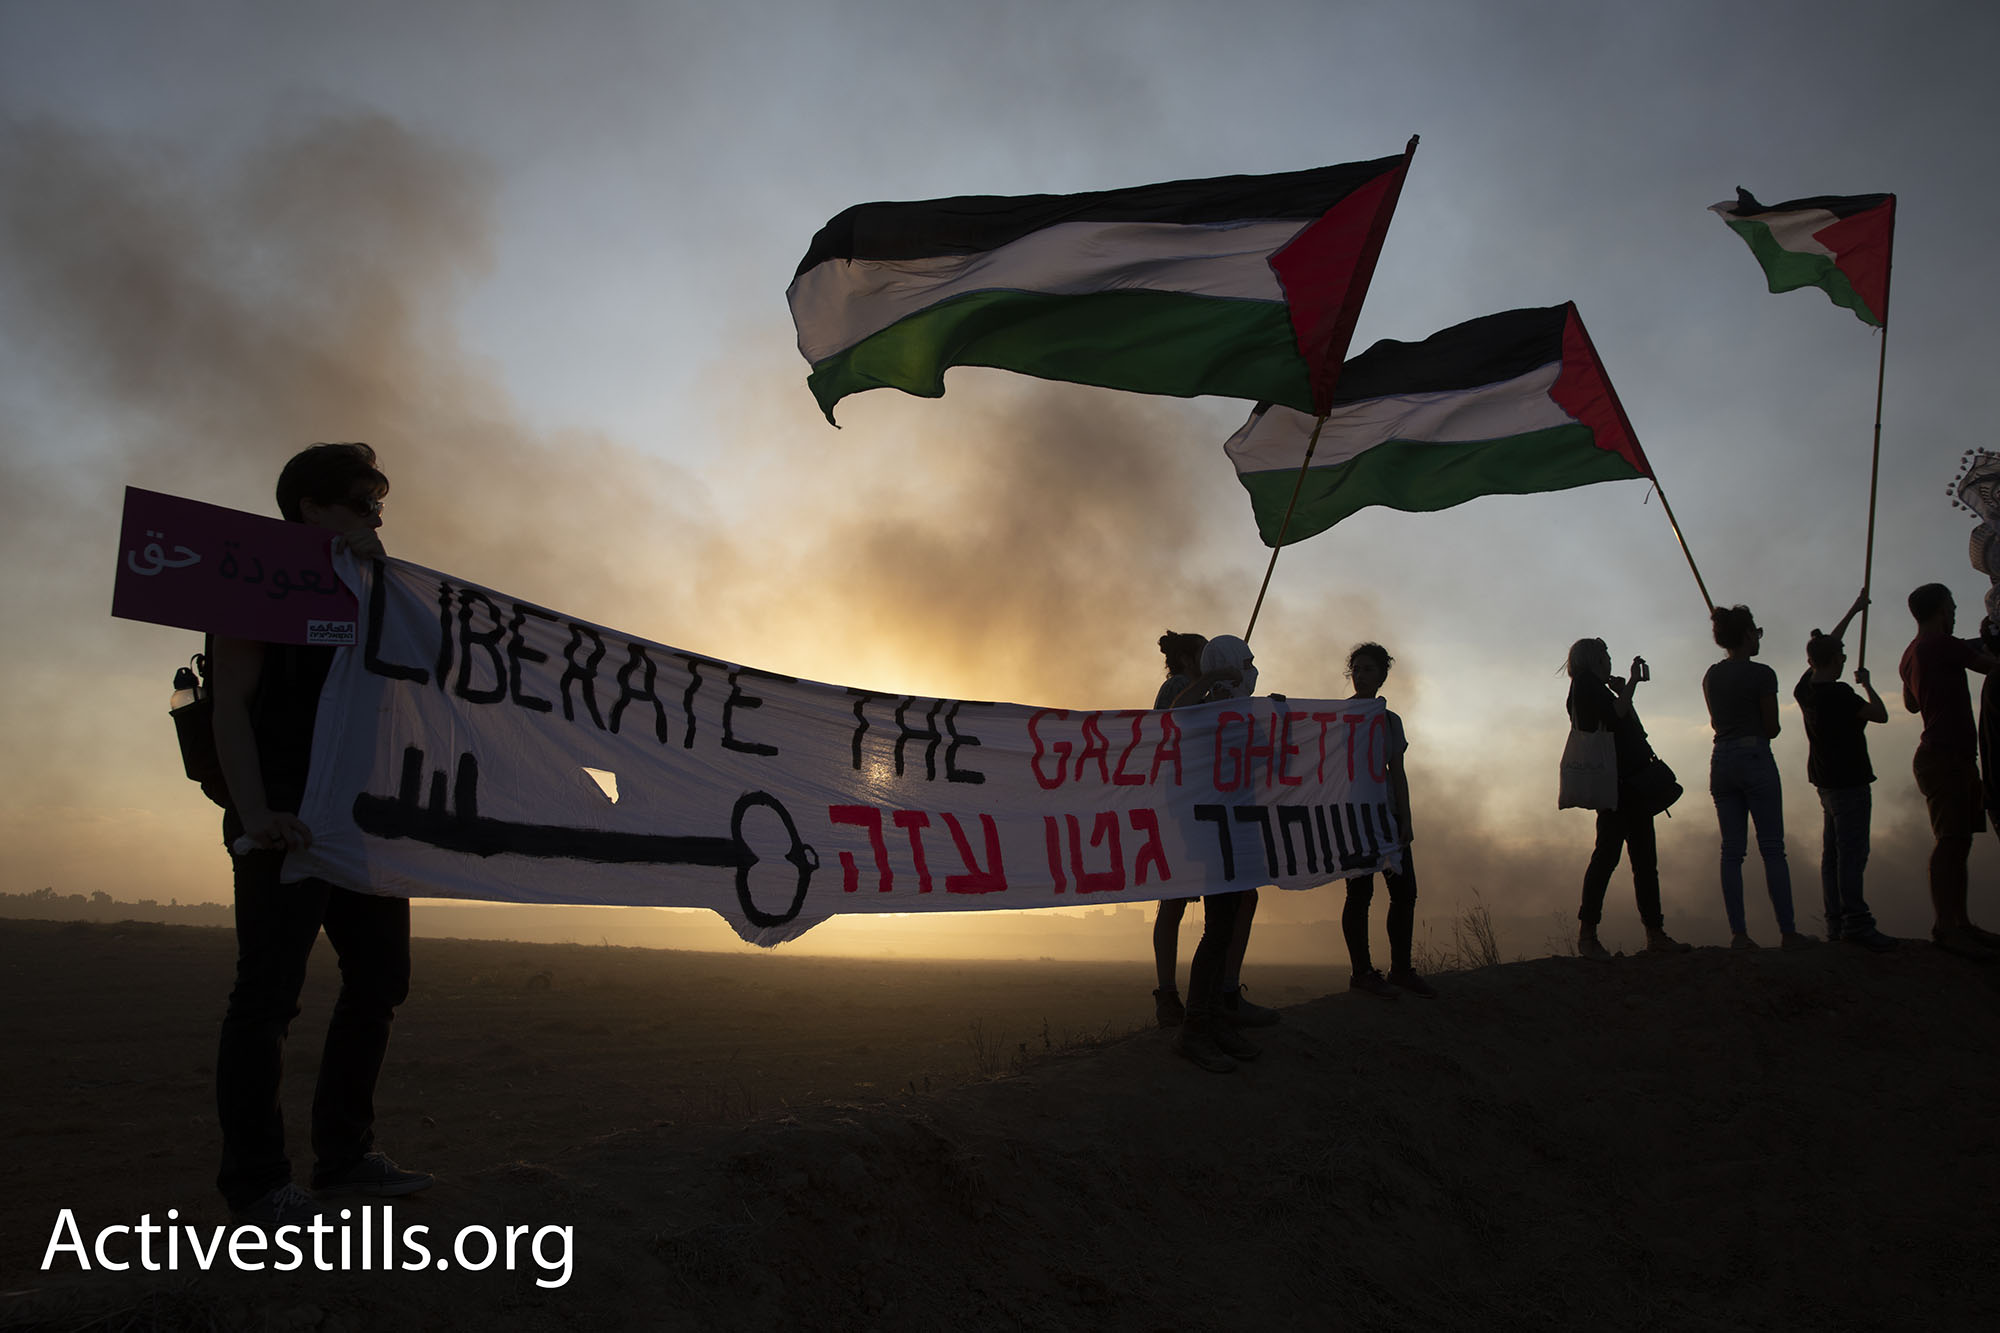 Israeli and international activists waved big Palestinian flags, chanted slogans, and carried posters supporting Palestinians' right of return. (Oren Ziv/Activestills.org)